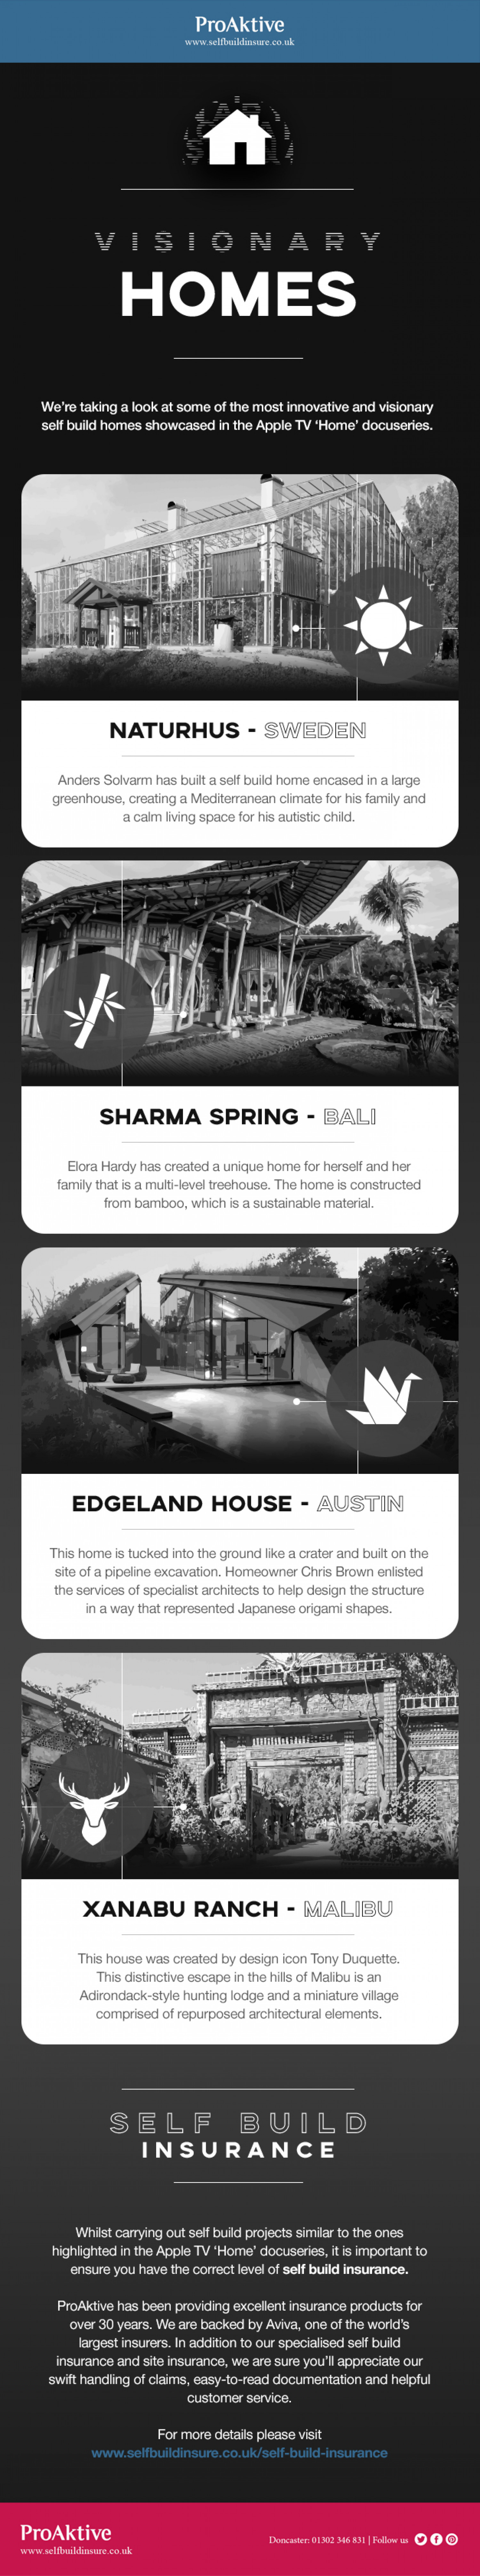 Visionary Homes Infographic